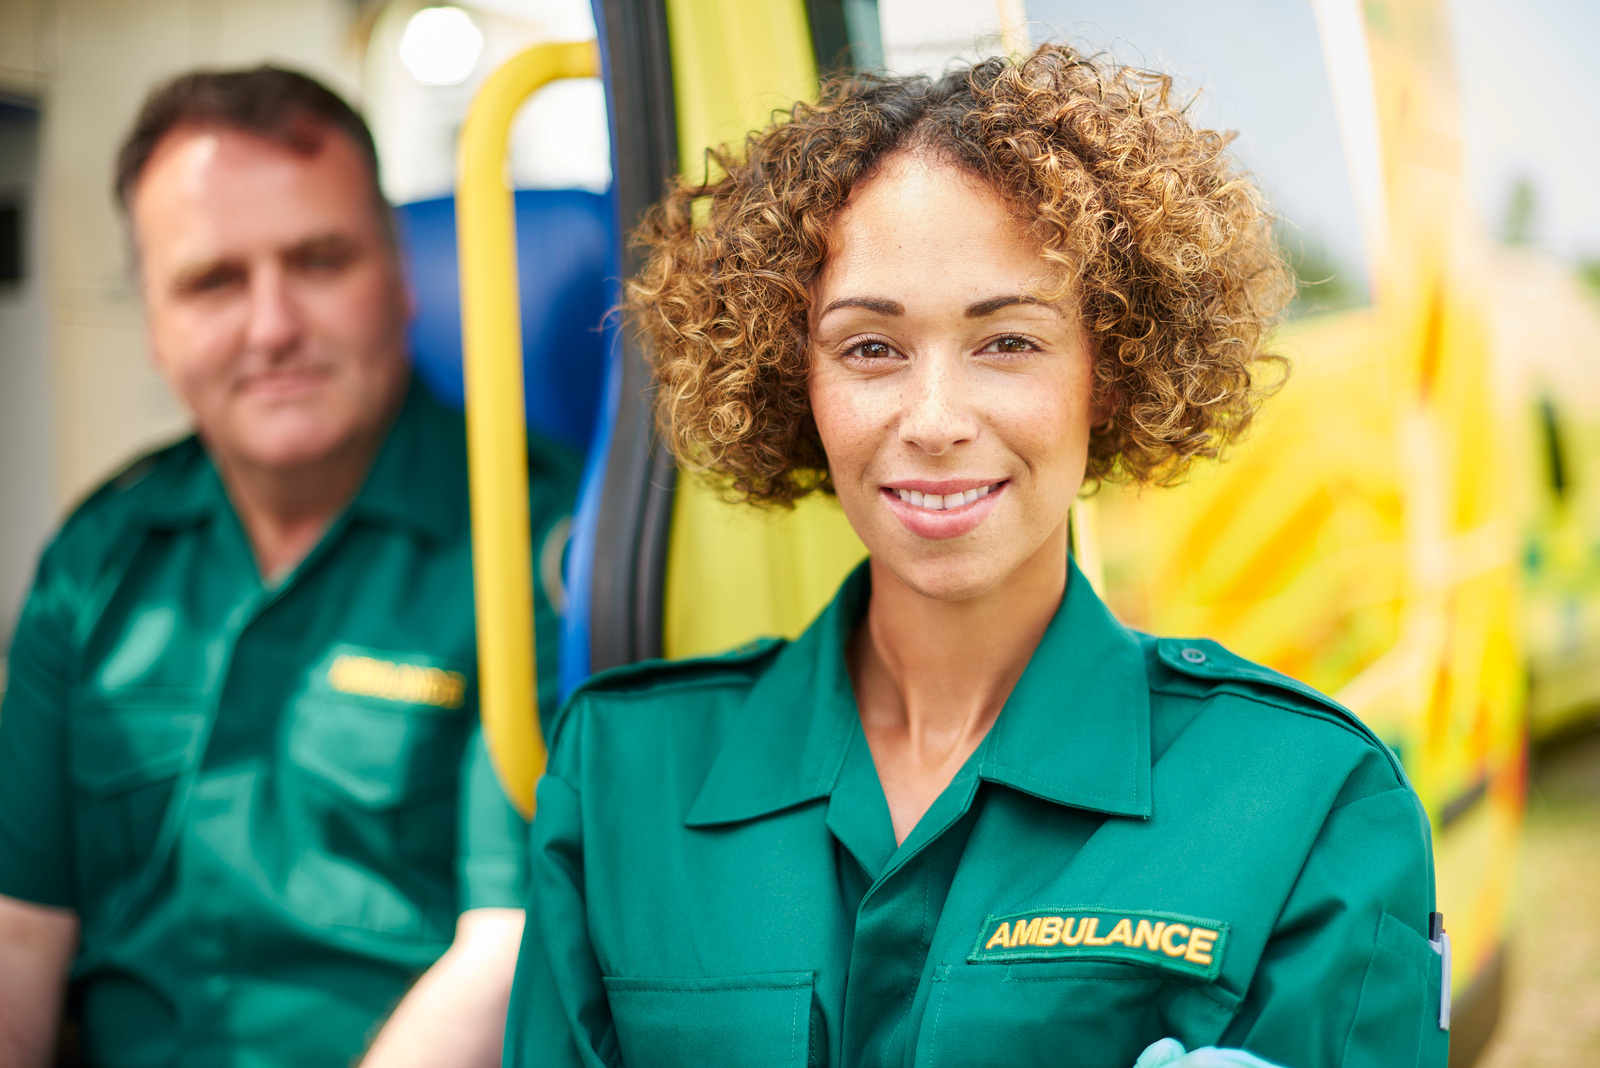 Bespoke solutions for private ambulance providers and healthcare services.